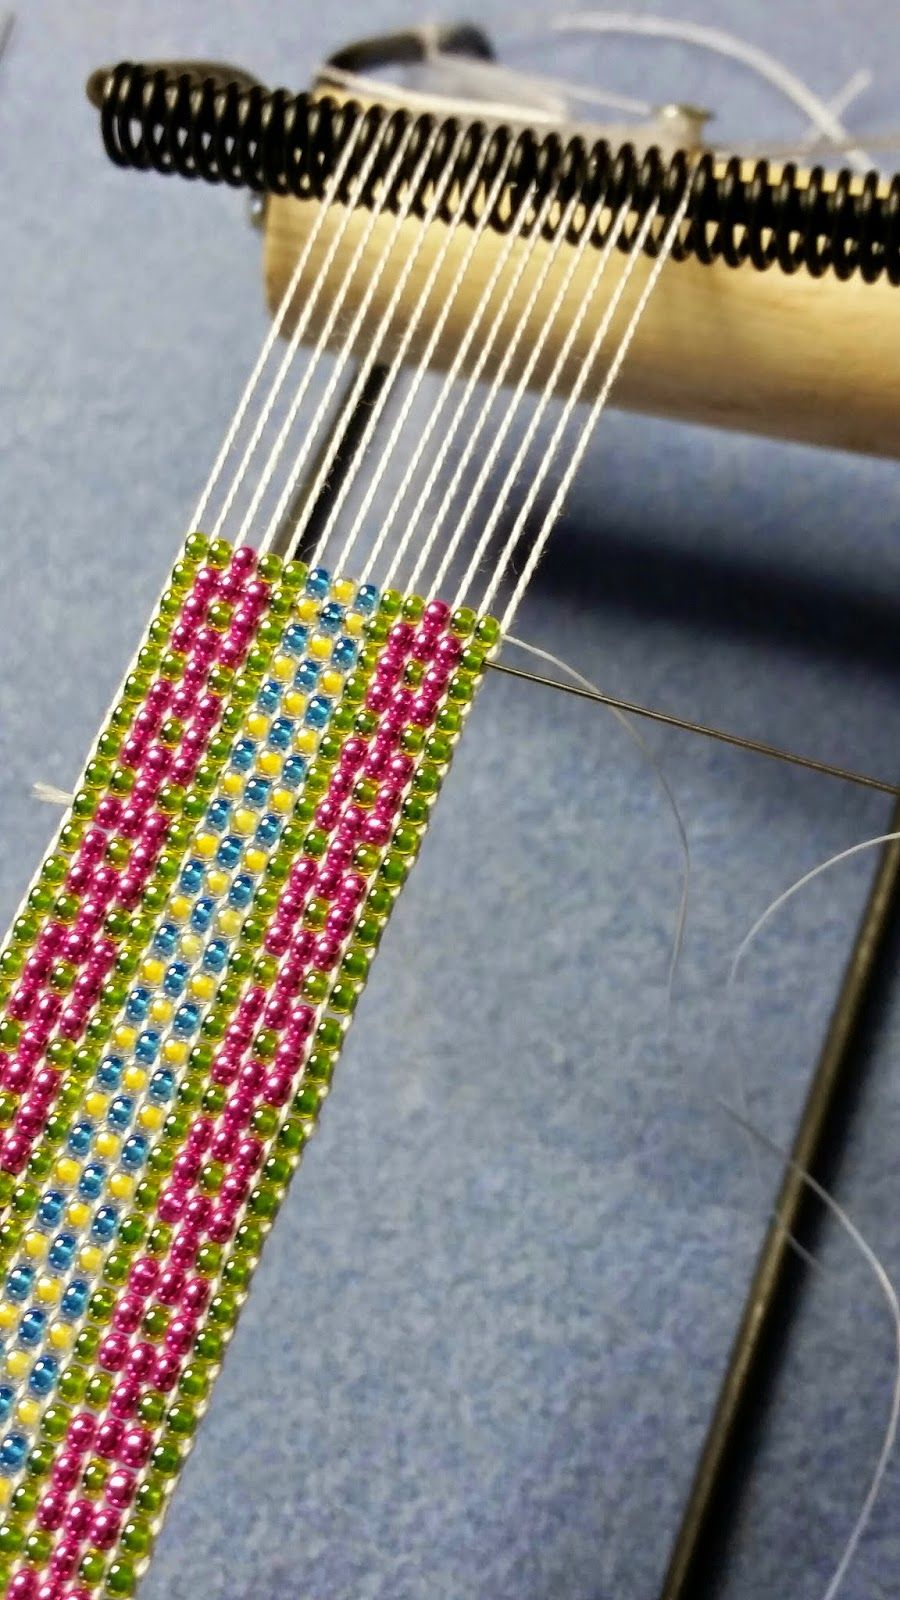 what nots how to finish a loomed bracelet seed bead